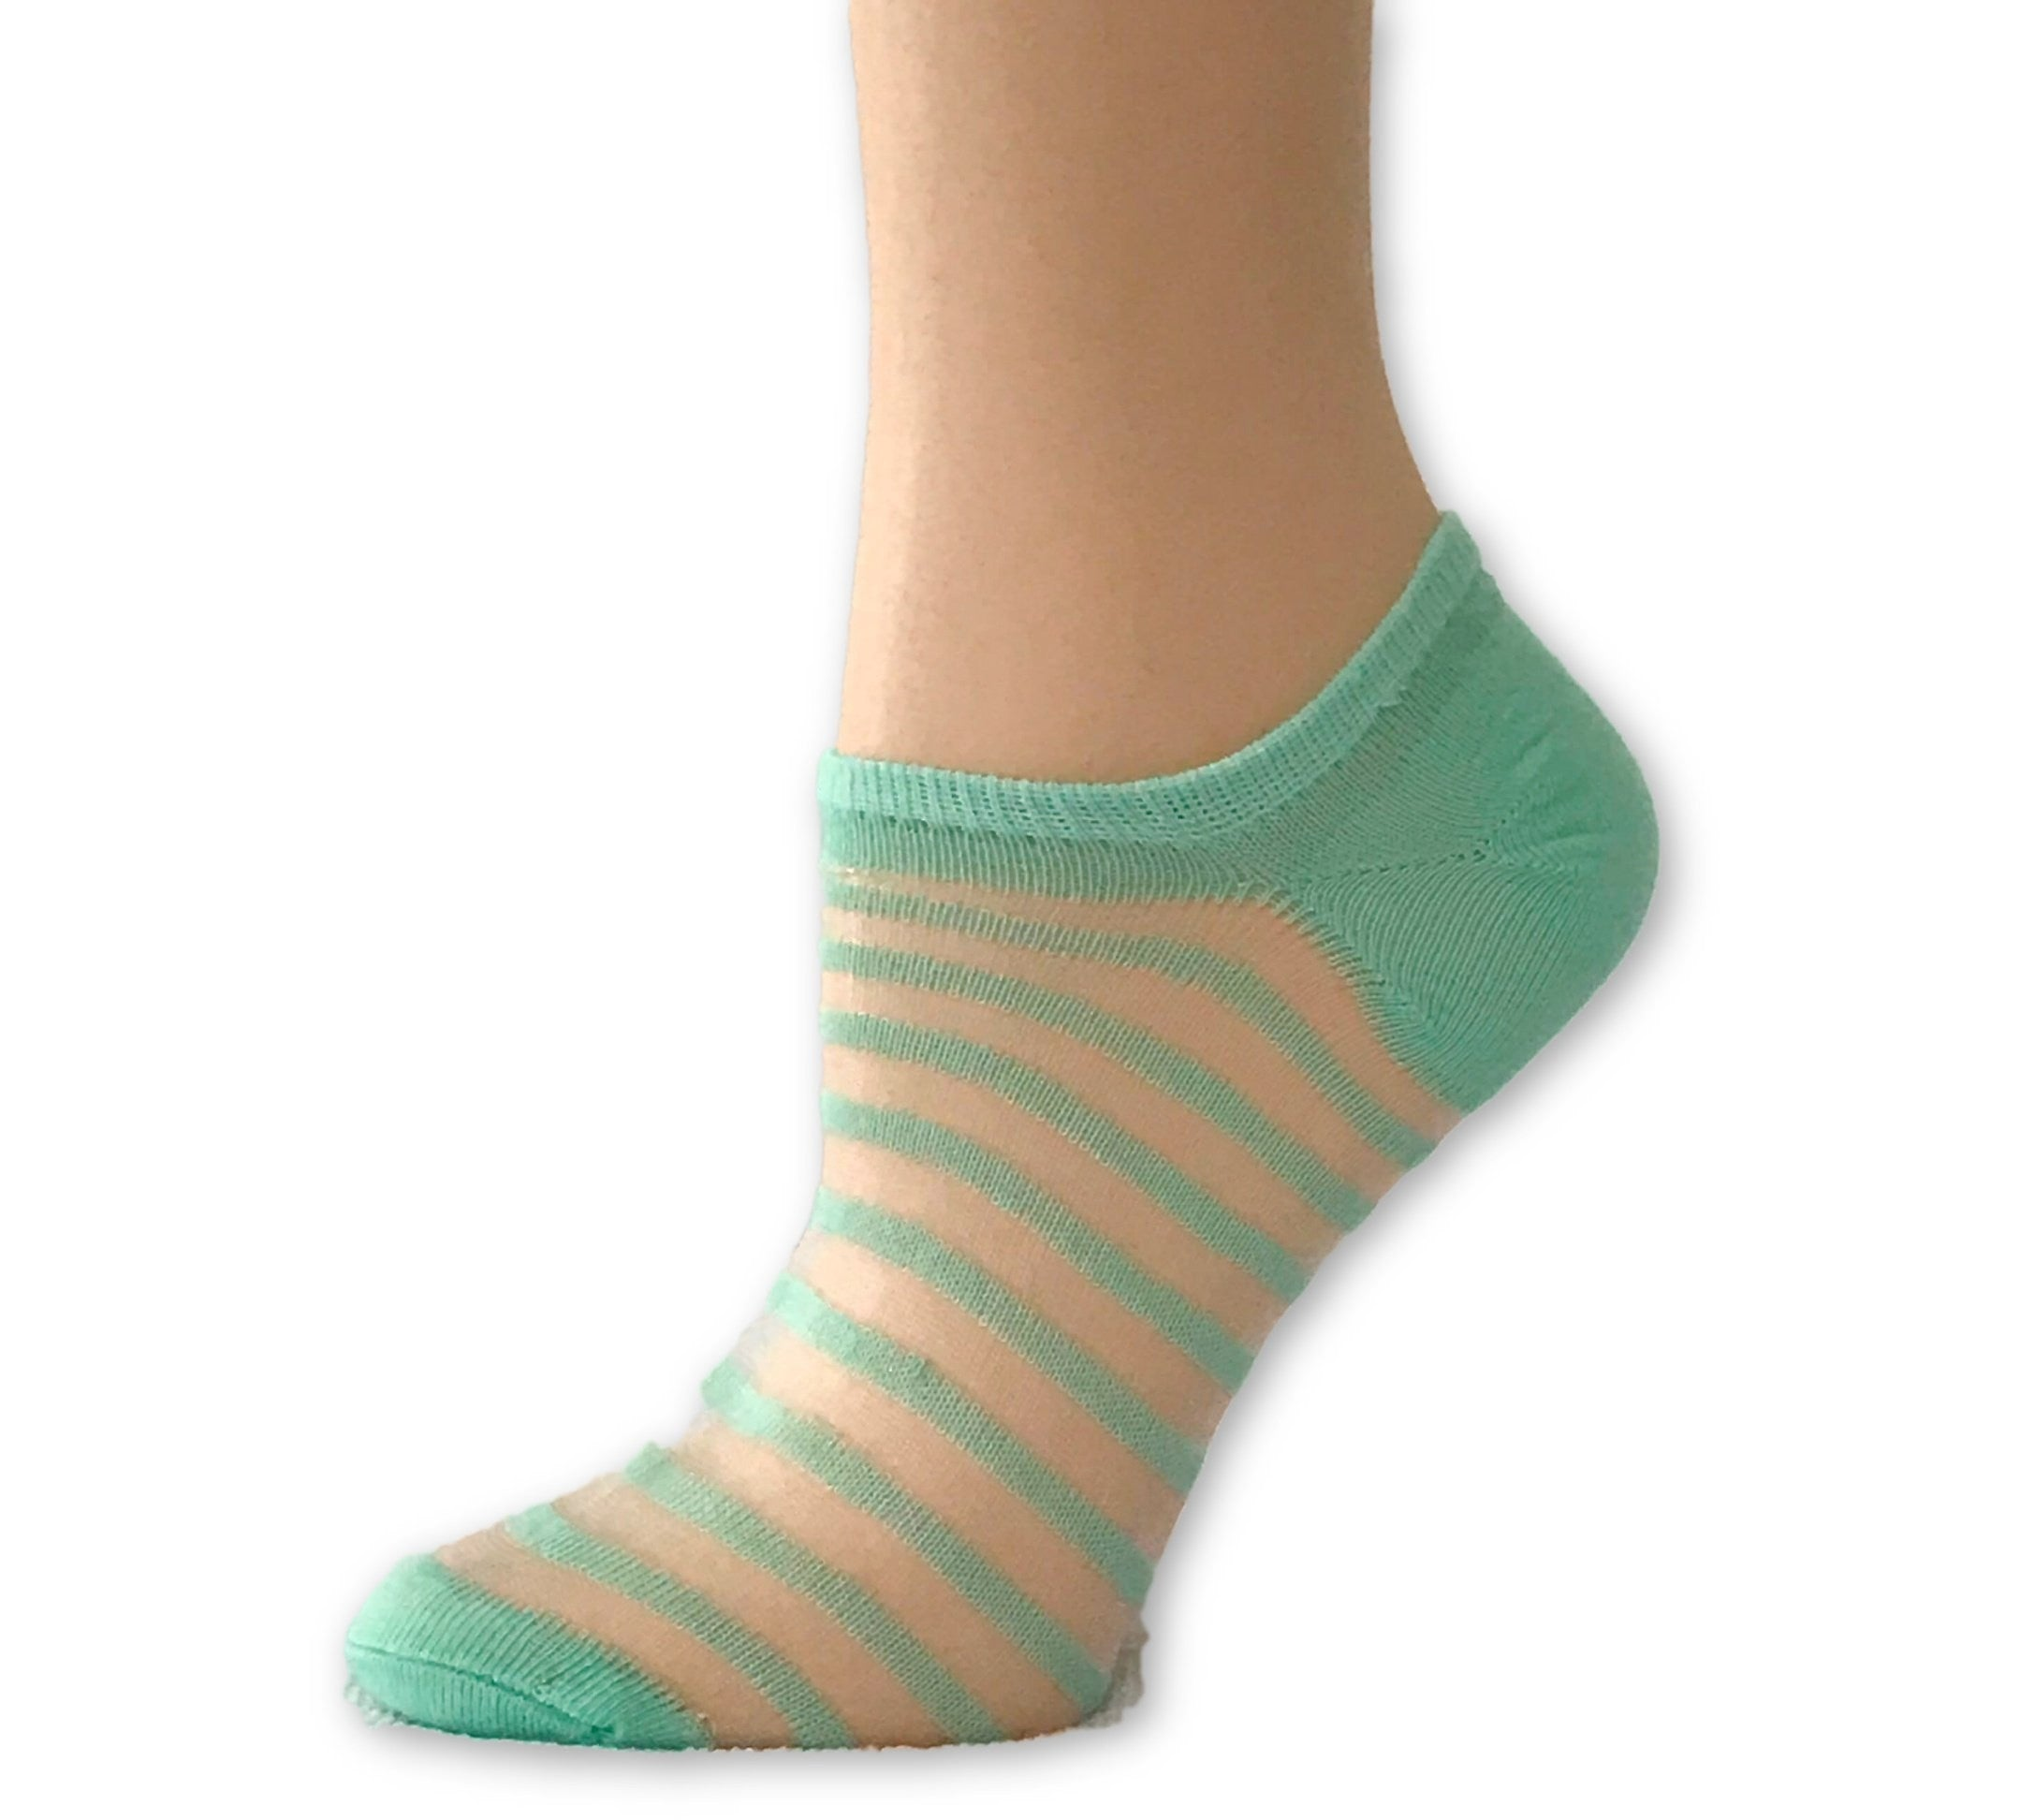 Stripped Neon Green Ankle Sheer Socks - Global Trendz Fashion®